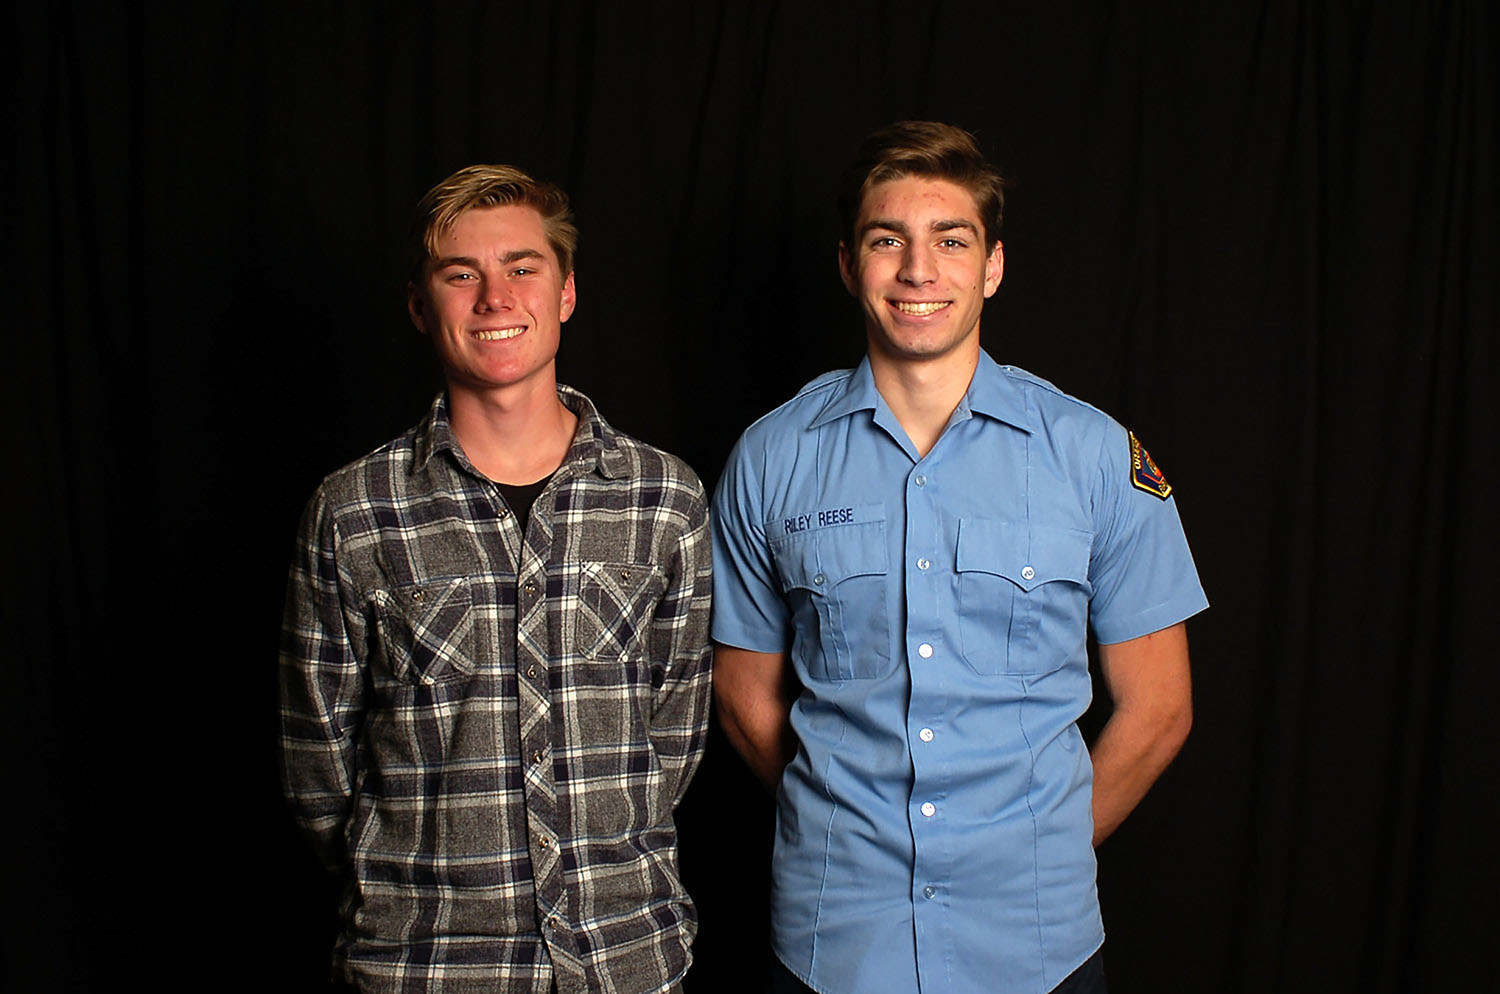 Gavin Fleugge (11) and Riley Reese (12) are both expanding their knowledge and skill level in the field of firefighting to help them reach their dream career, being a firefighter.